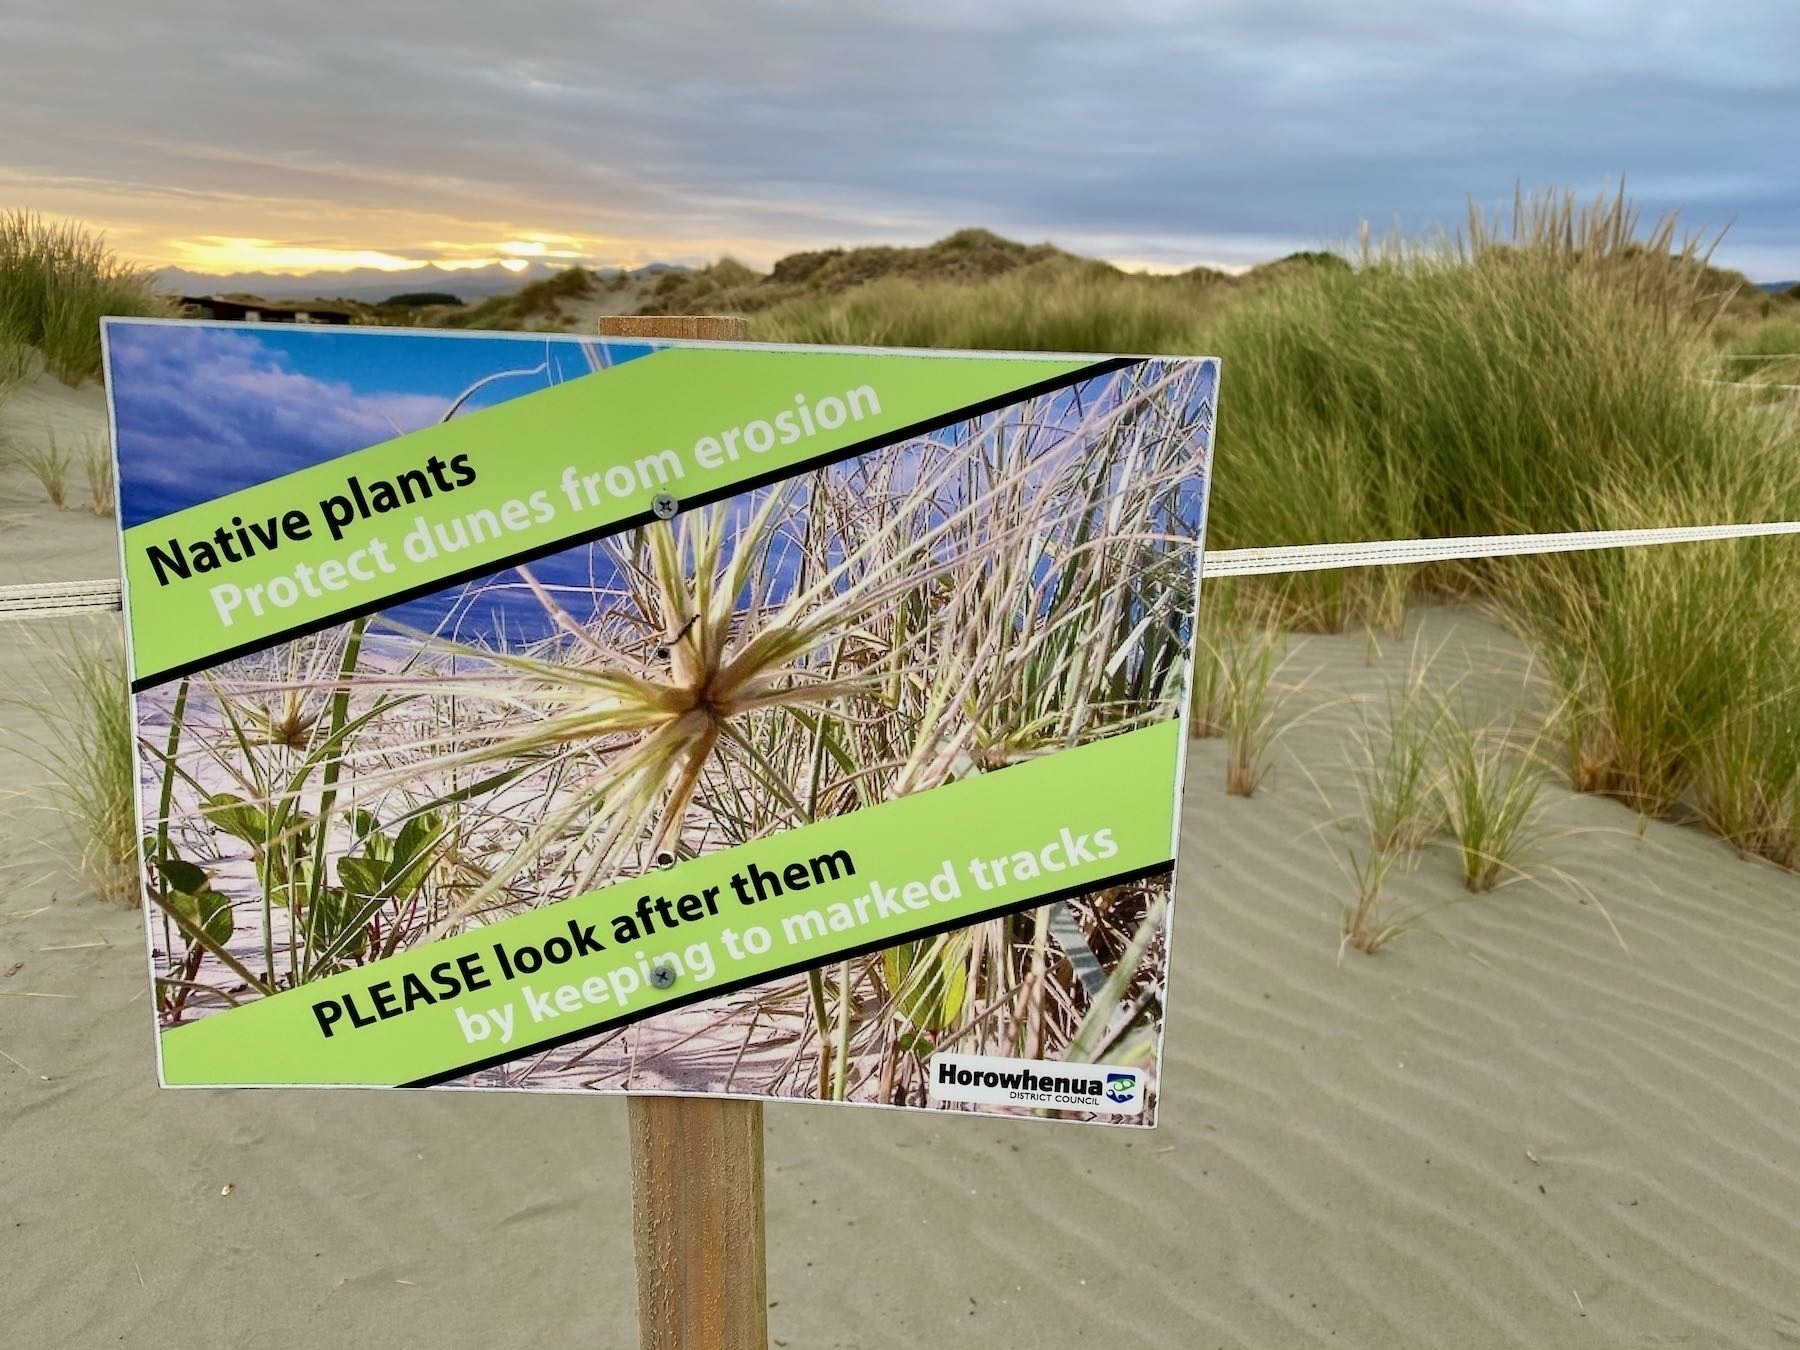 Taped off dunes and a sign asking people to look after the native plants that protect dunes from erosion by keeping to the tracks.